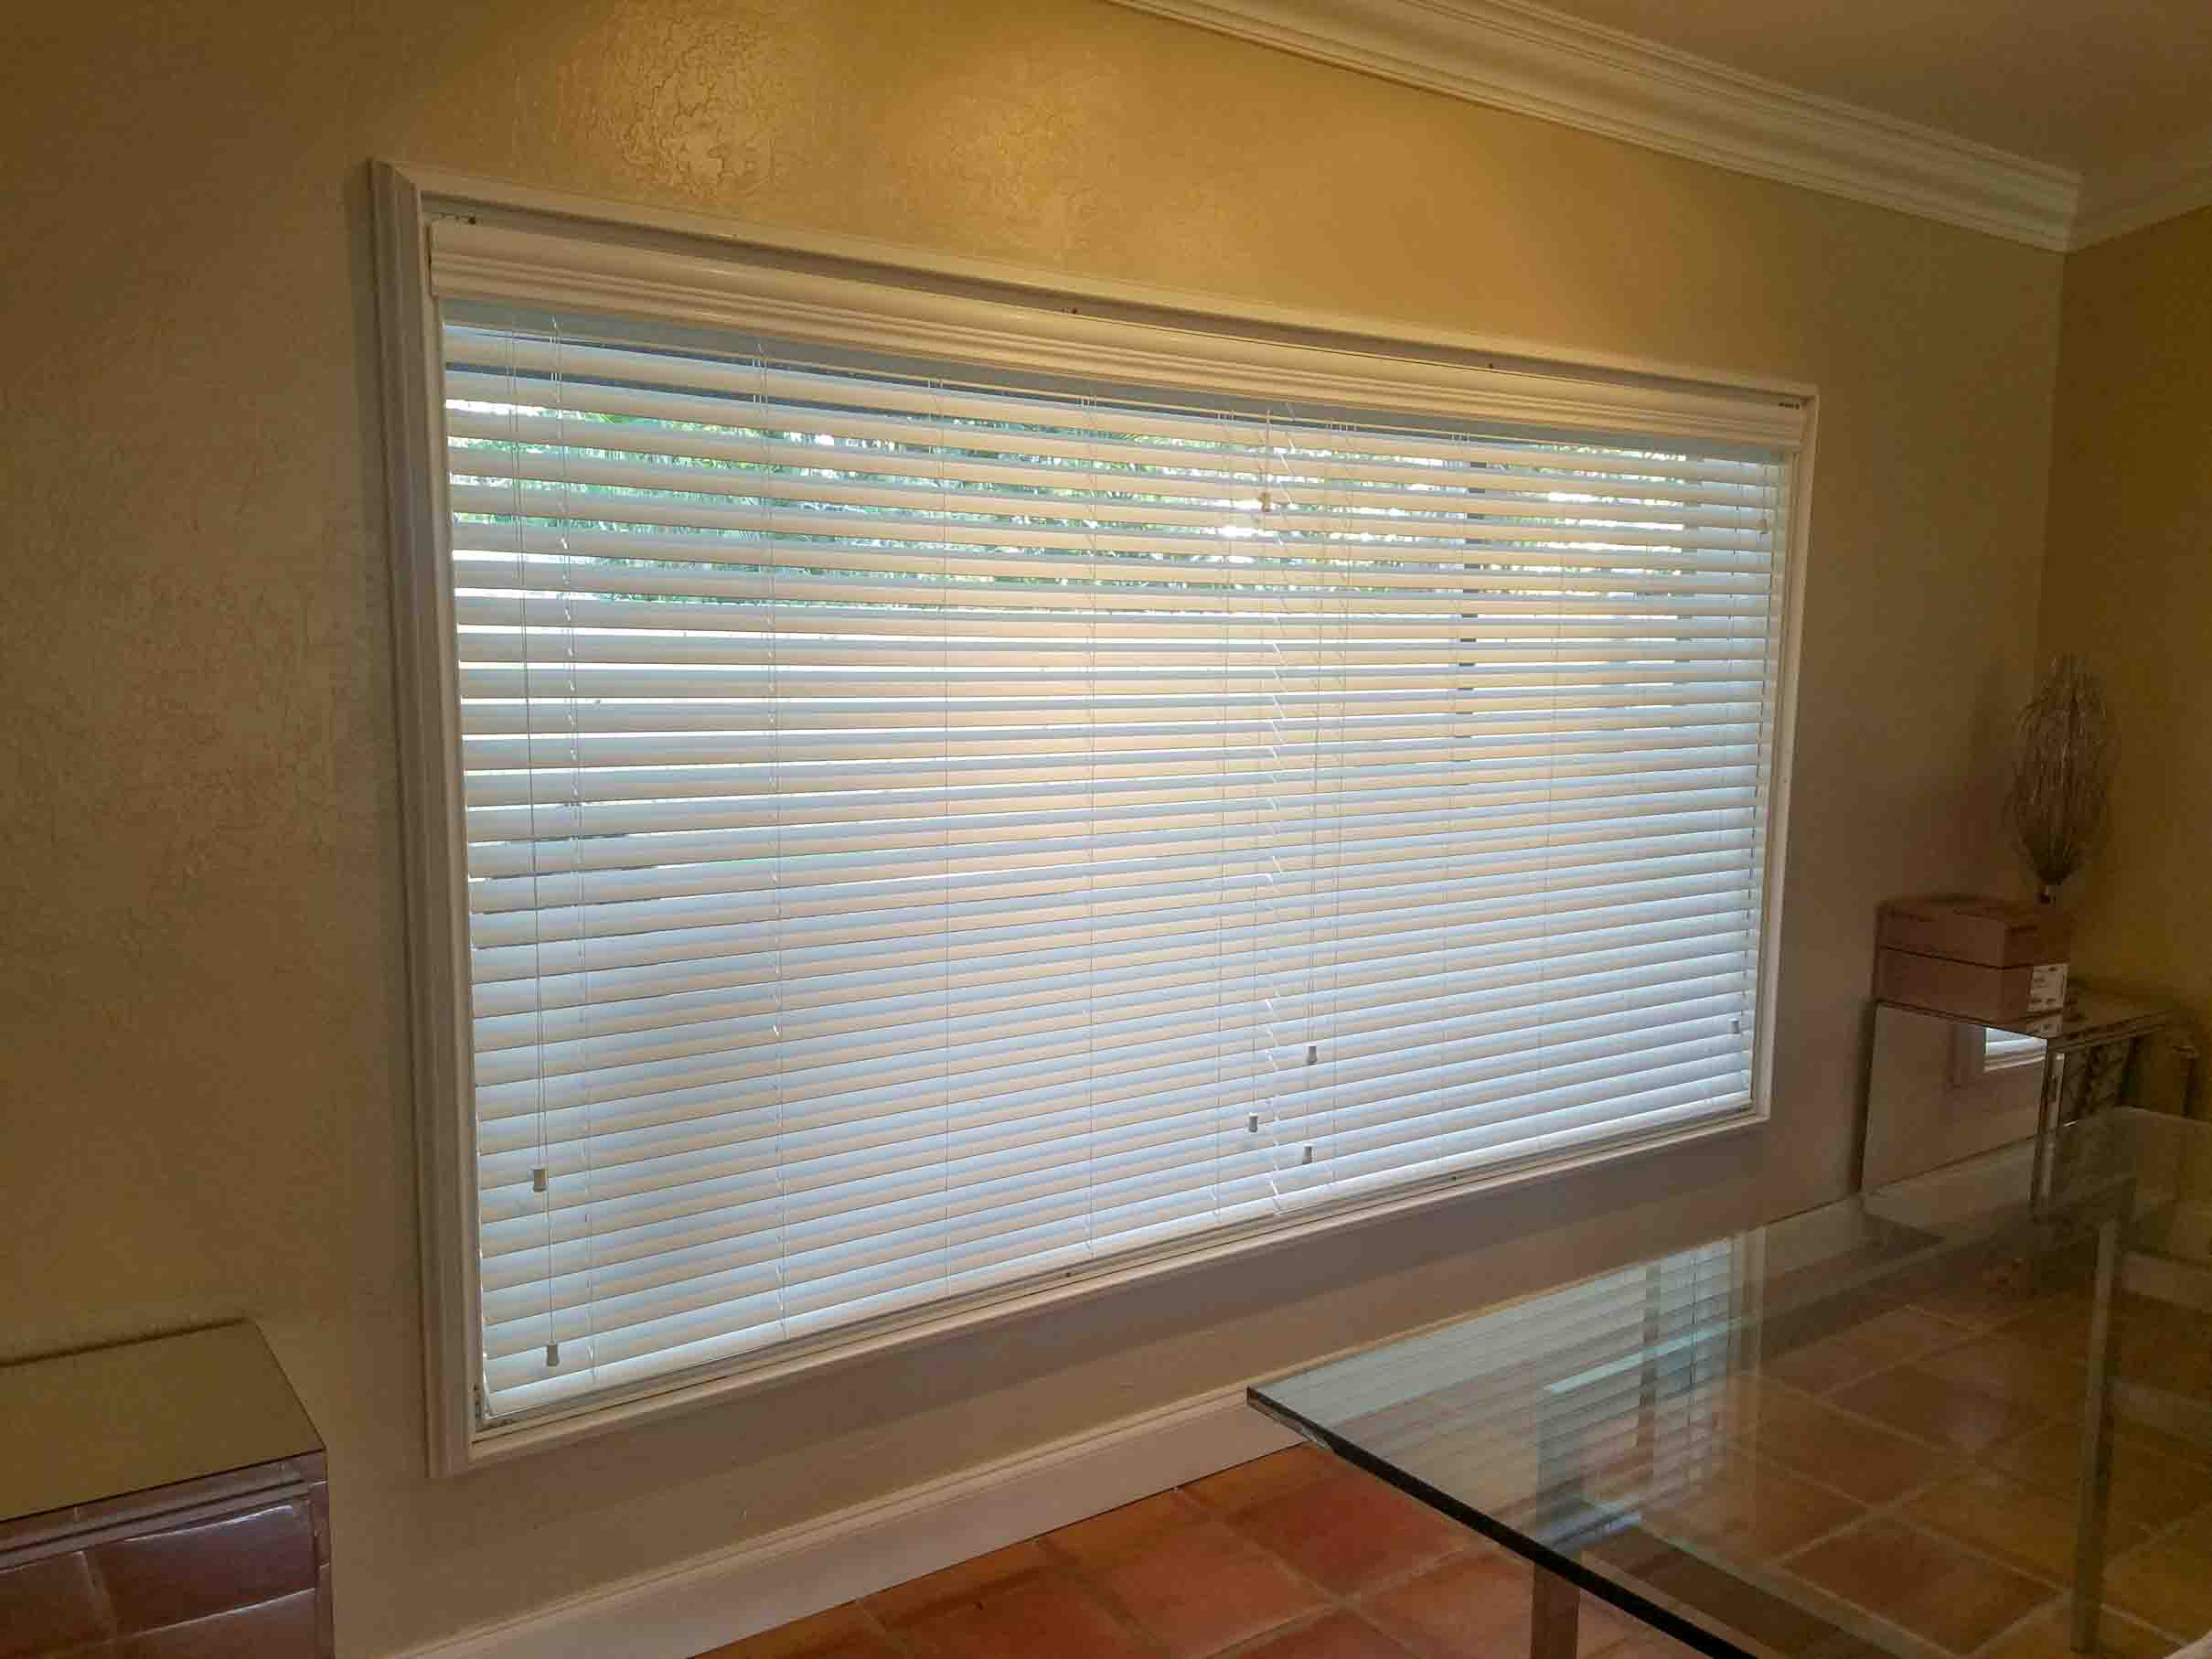 wood blinds gallery WOOD BLINDS GALLERY 20180308 164726